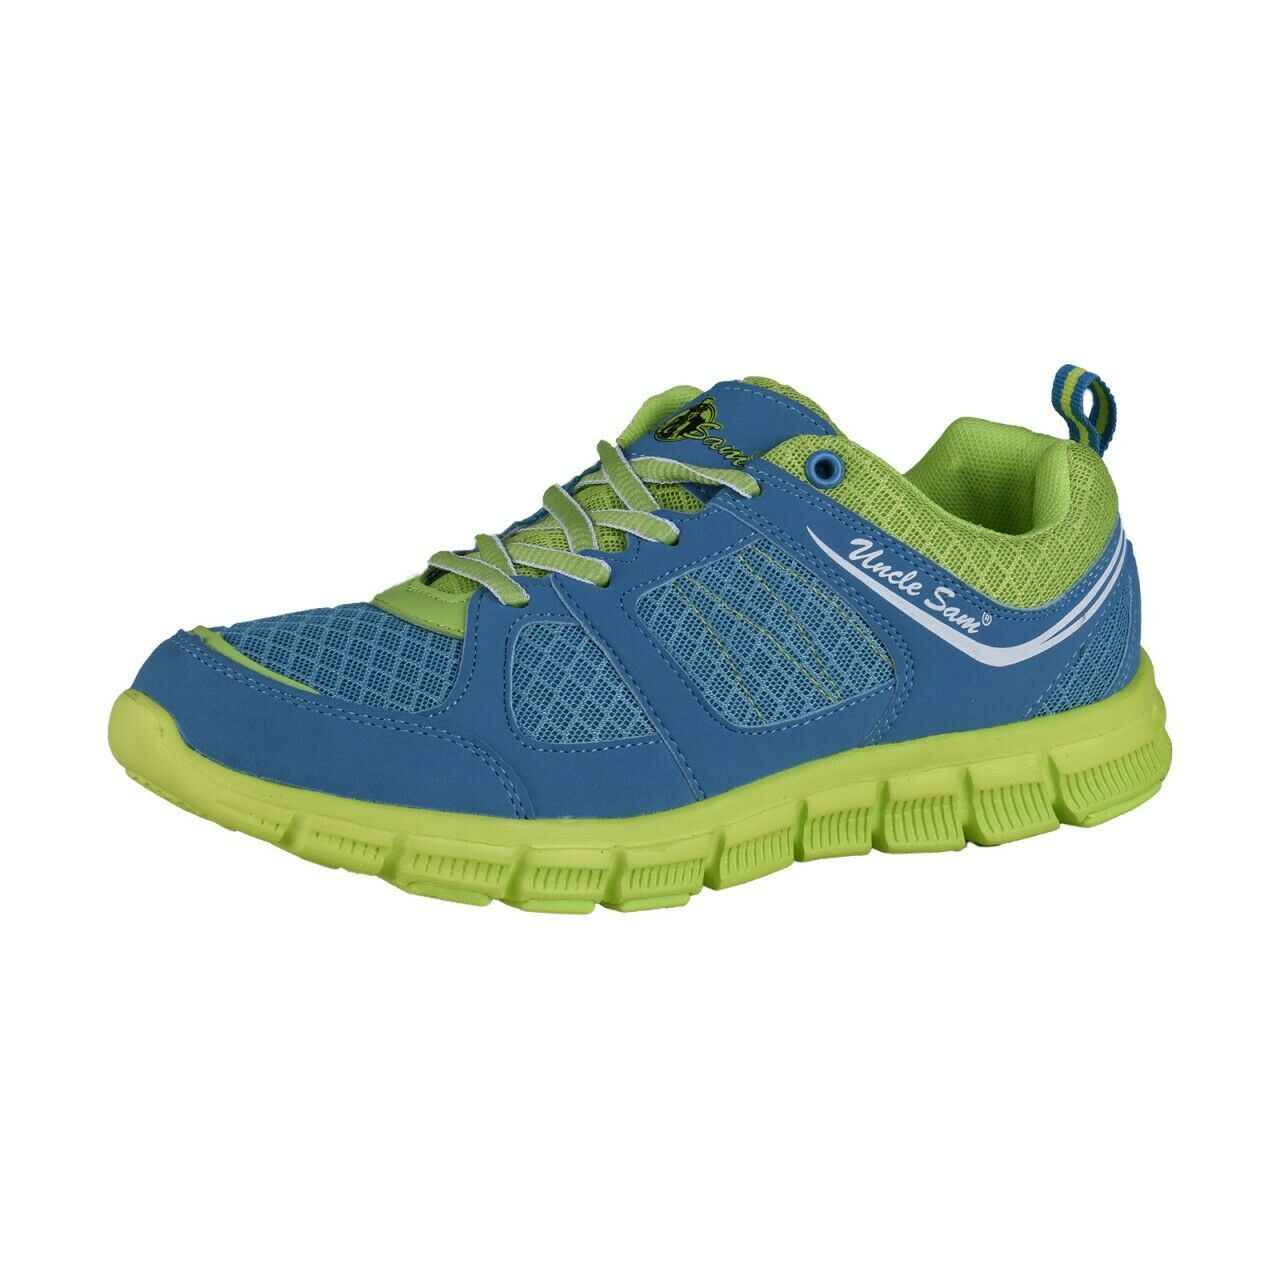 Uncle Sam Ladies Lightweight Running shoes bluee Green